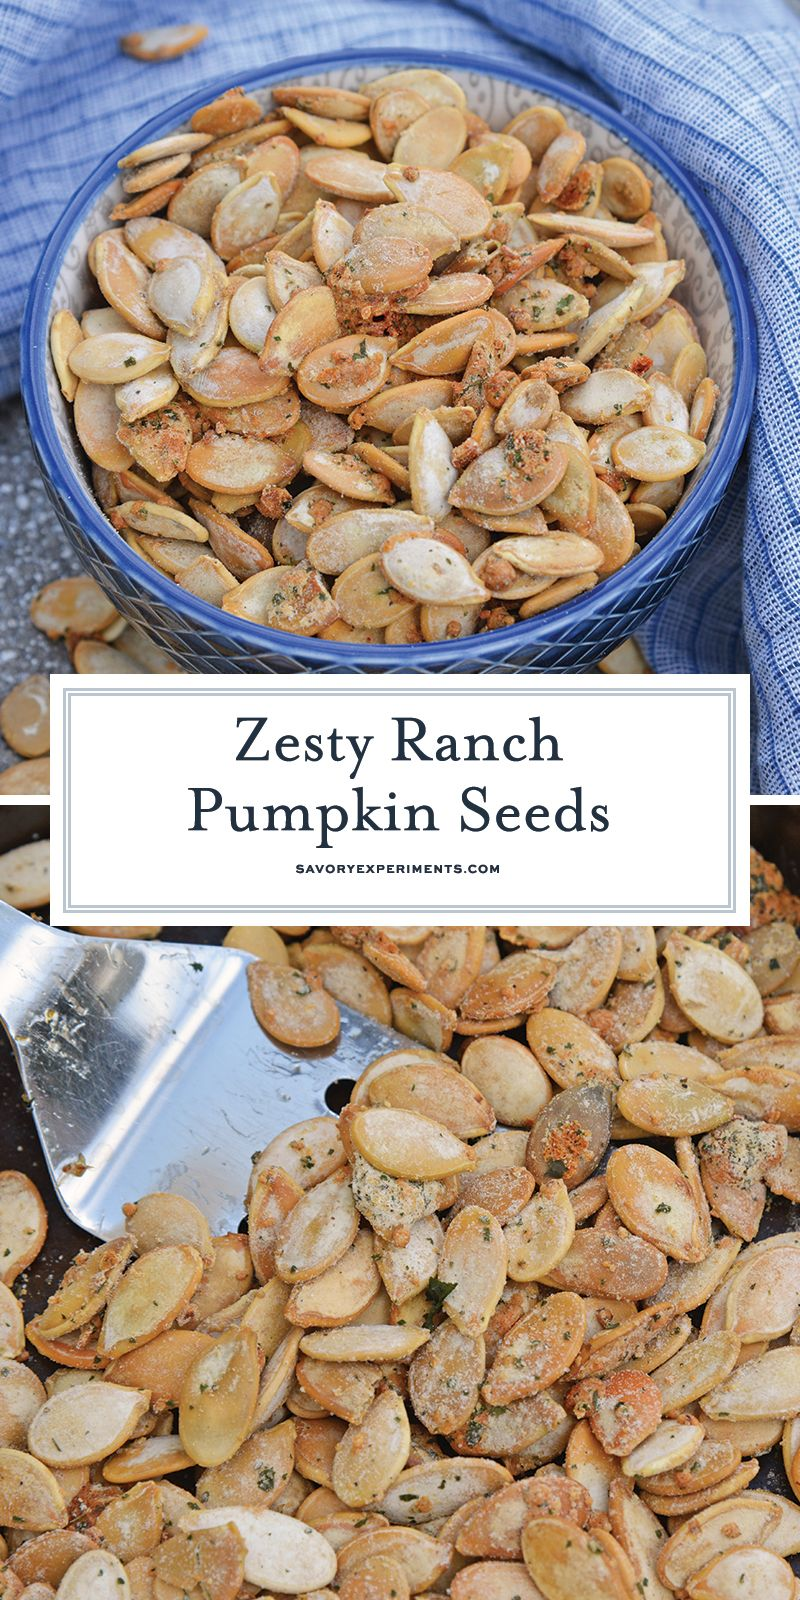 Ranch Pumpkin Seeds take roasted pumpkin seeds to a whole new level. With only 3 ingredients, they're an easy and delicious fall snack! #roastedpumpkinseeds #ranchpumpkinseeds www.savoryexperiments.com #pumpkinseedsrecipe